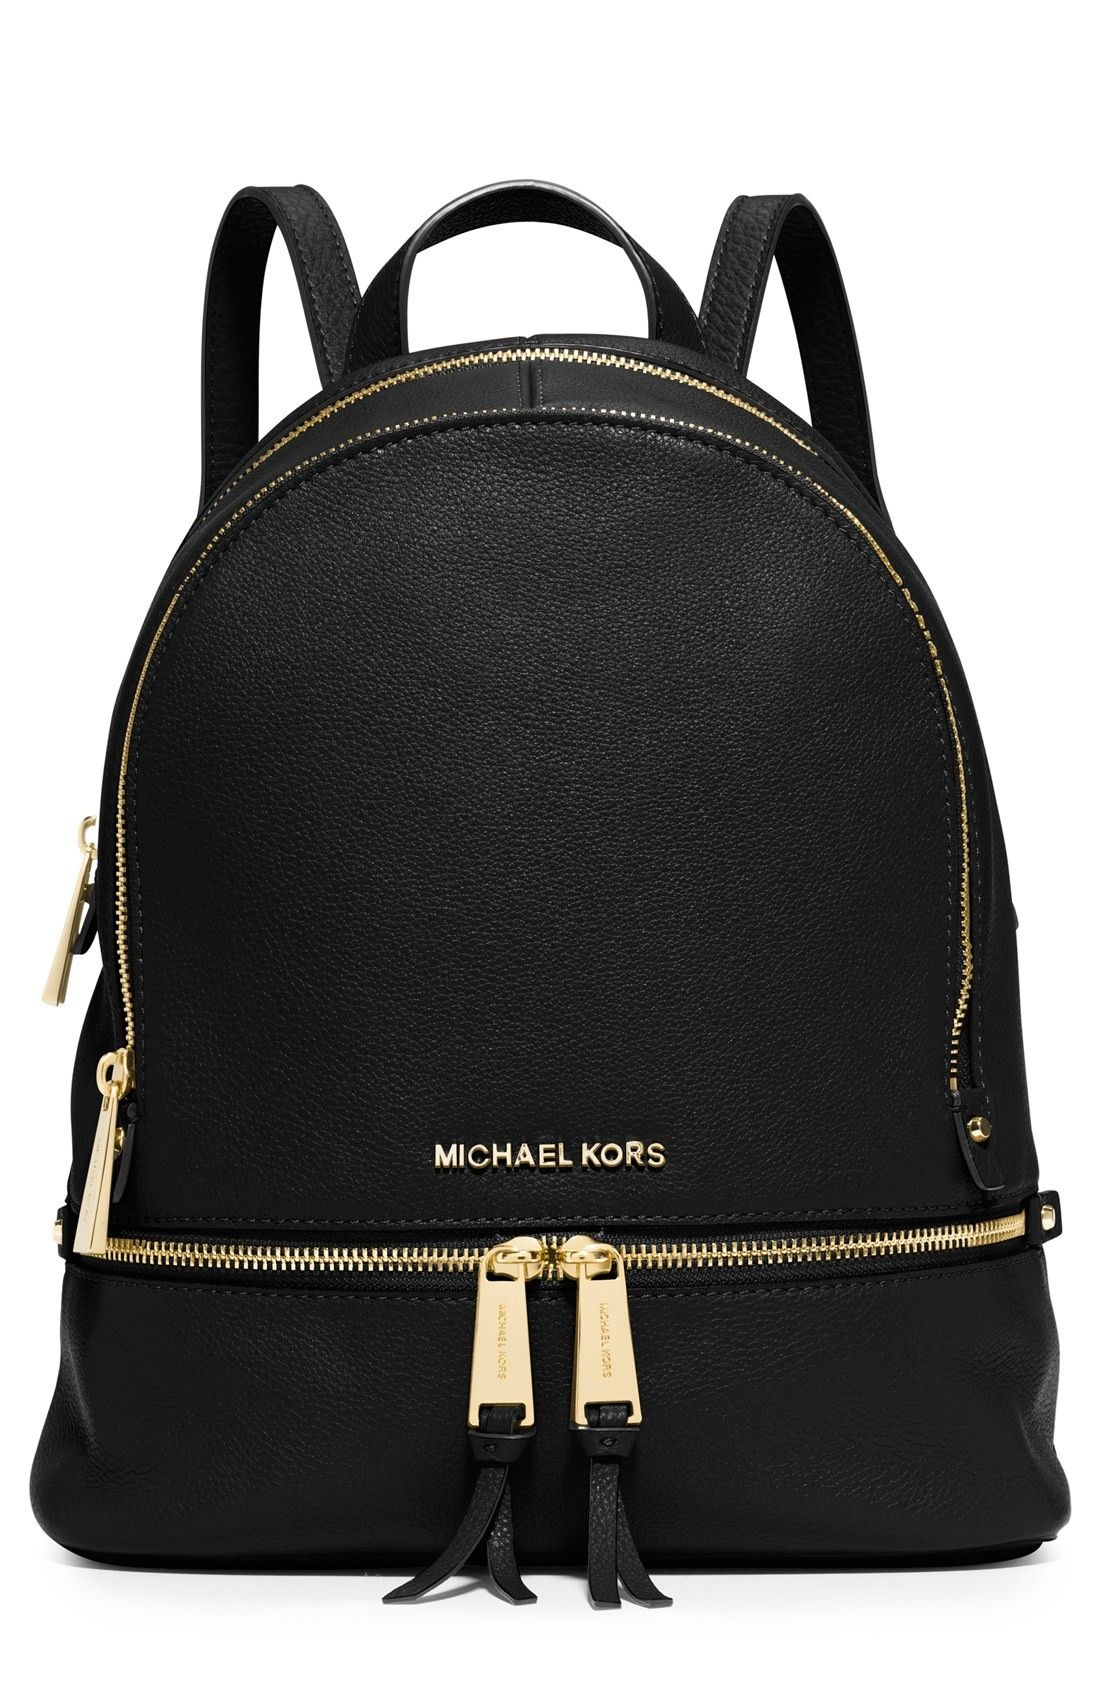 d33848d70c8613 ... bag cut from color-saturated leather. Raised goldtone logo letters  serve as a signature signoff. Style Name: Michael Michael Kors 'Extra Small Rhea  Zip' ...